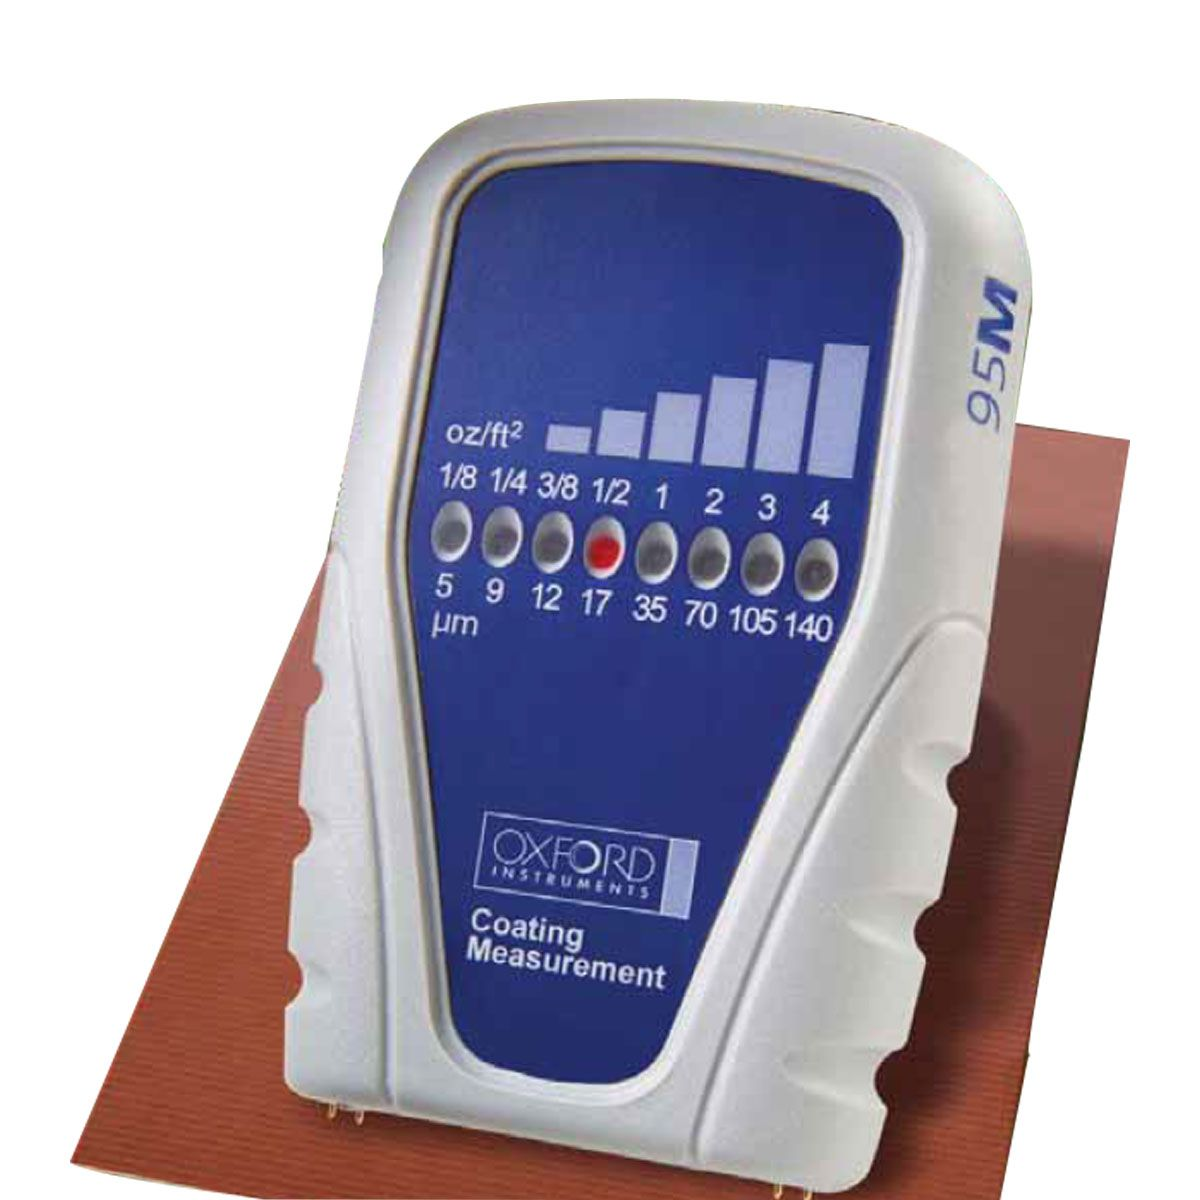 CMI 95M : Oxford Instruments Coating Measurement Gauge